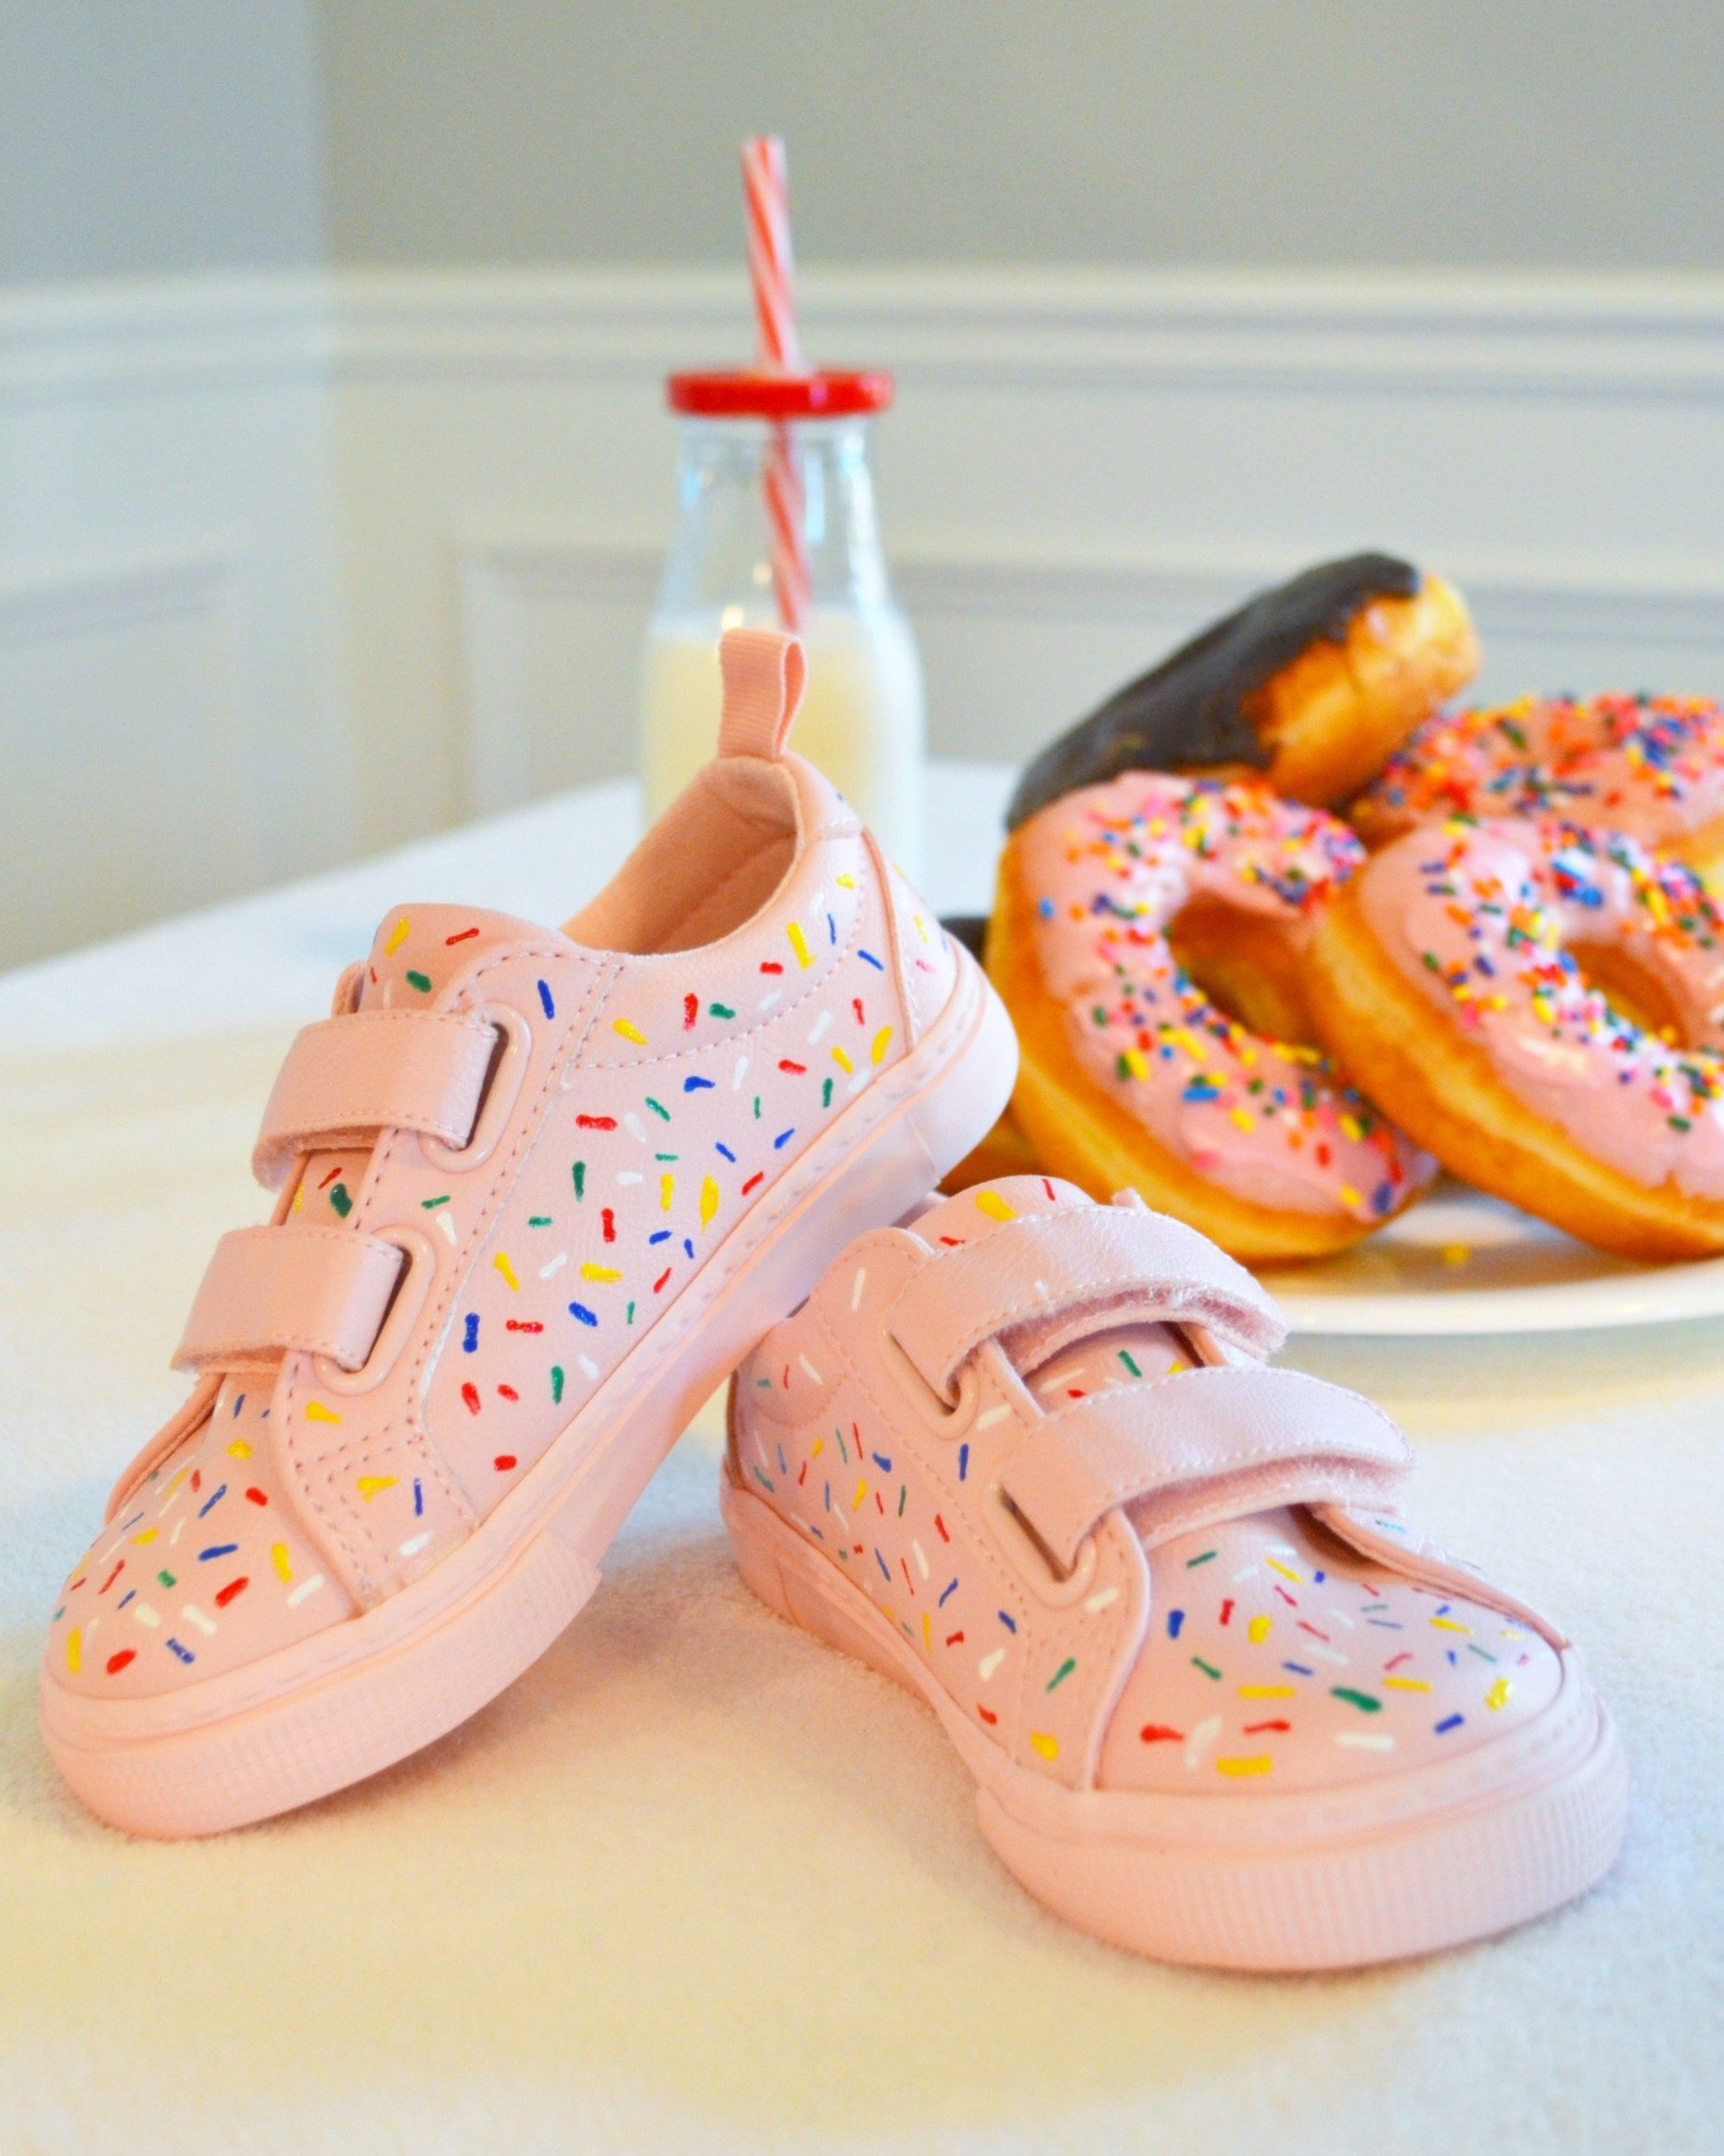 diy donut shoes | donut shoes, diy donuts and donuts